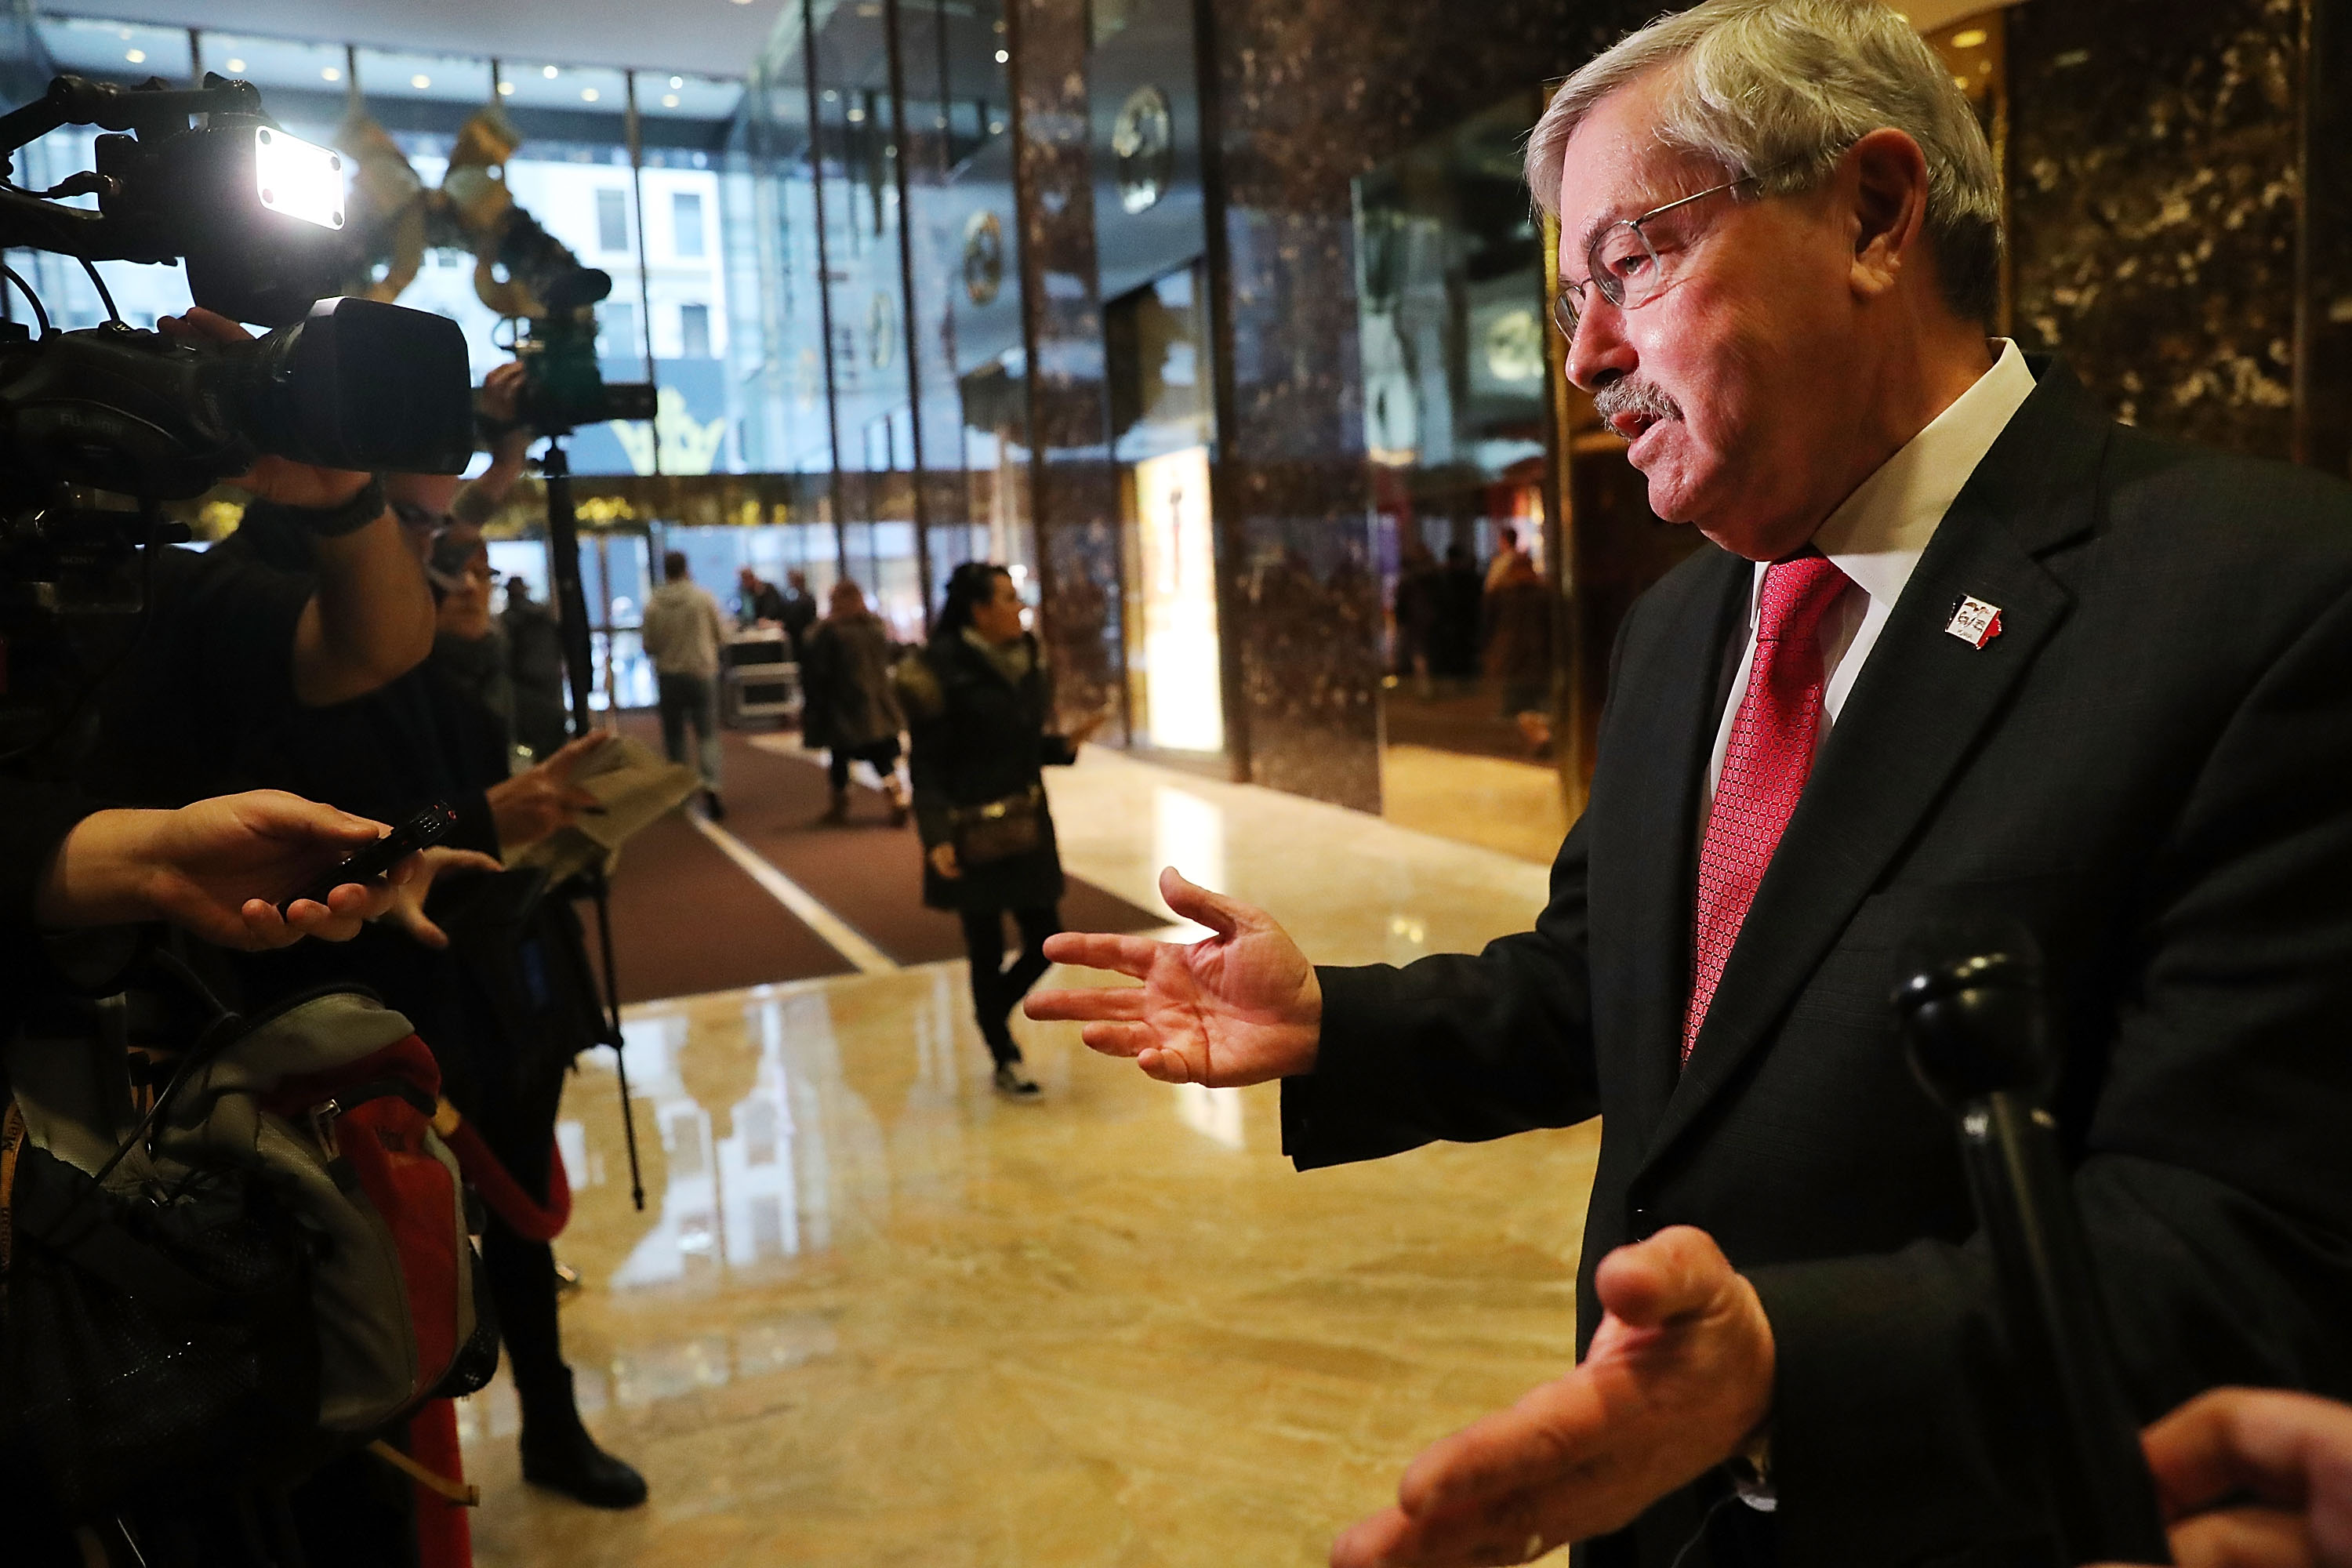 Iowa Gov. Terry Branstad speaks with members of the media at Trump Tower following meetings on December 6, 2016 in New York City.